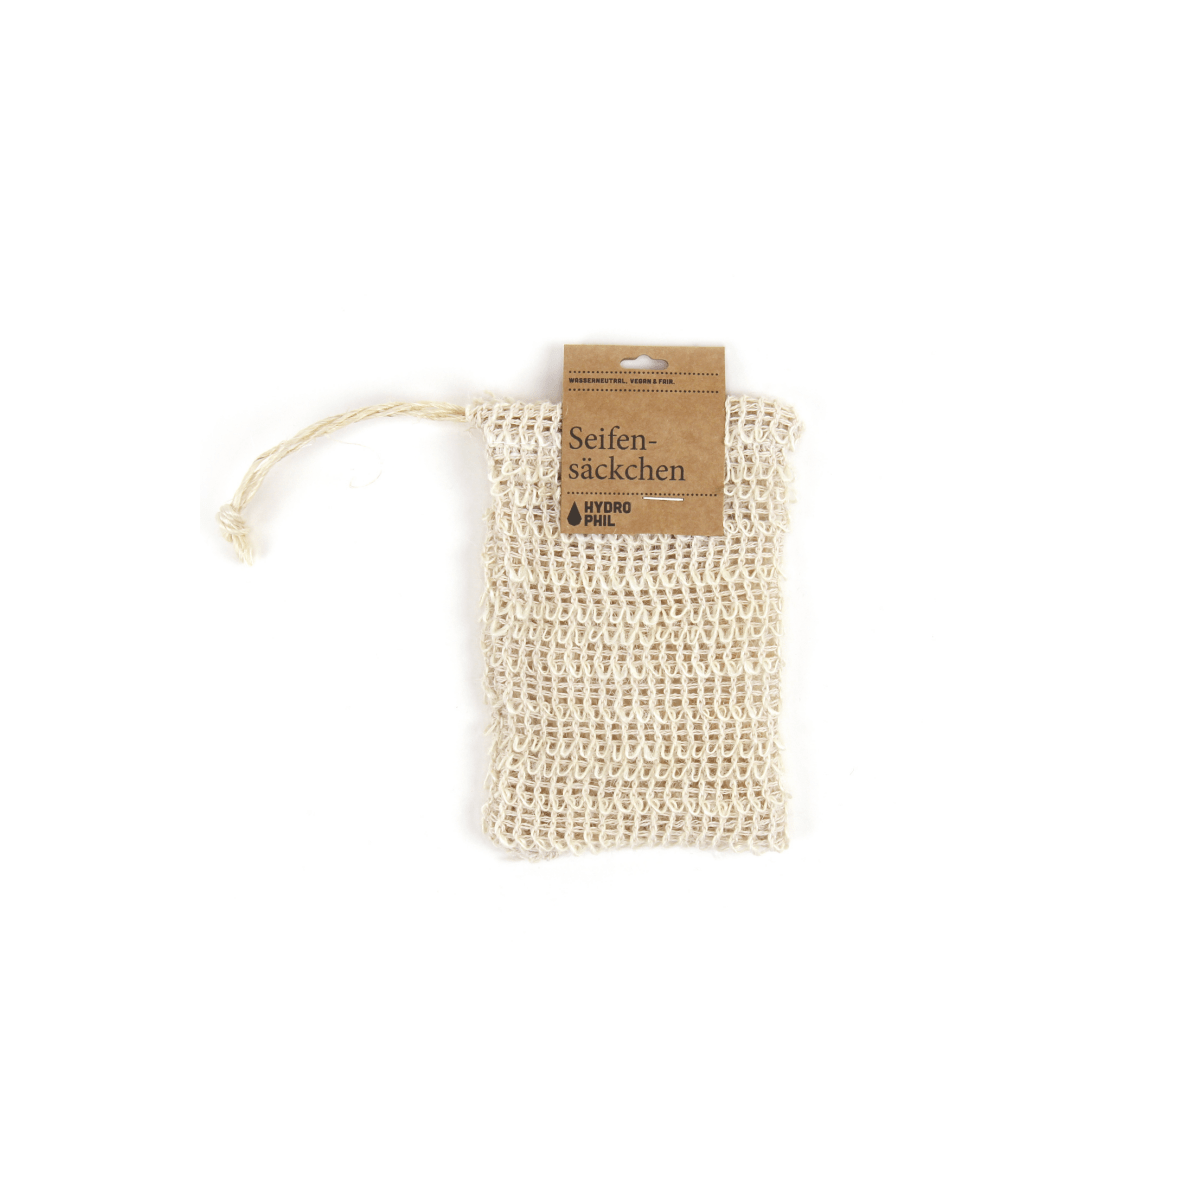 HYDROPHIL accessory Soap Bag in Sisal. sustainable fashion ethical fashion